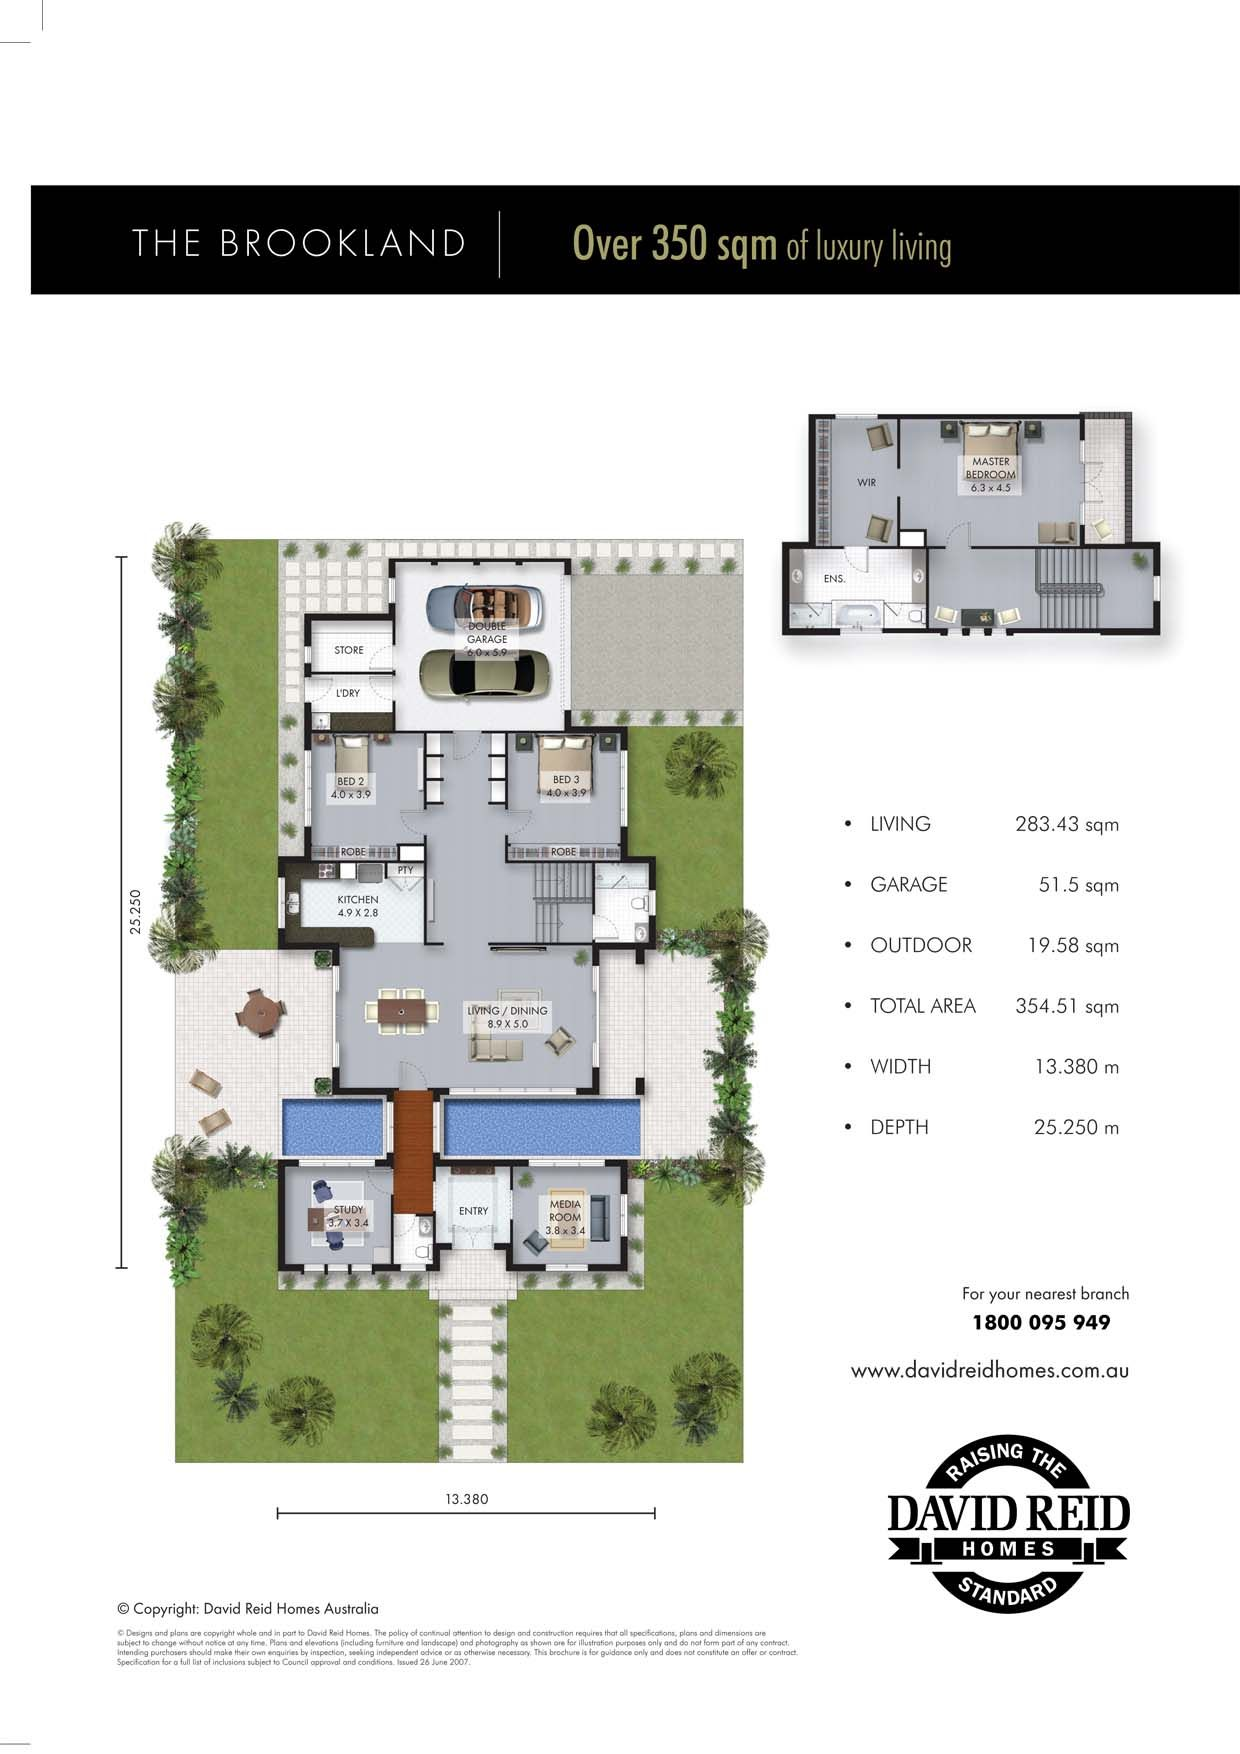 The Brookland Floor Plan   Concept Range. David Reid Homes Australia, Luxury  Custom Home Builder.